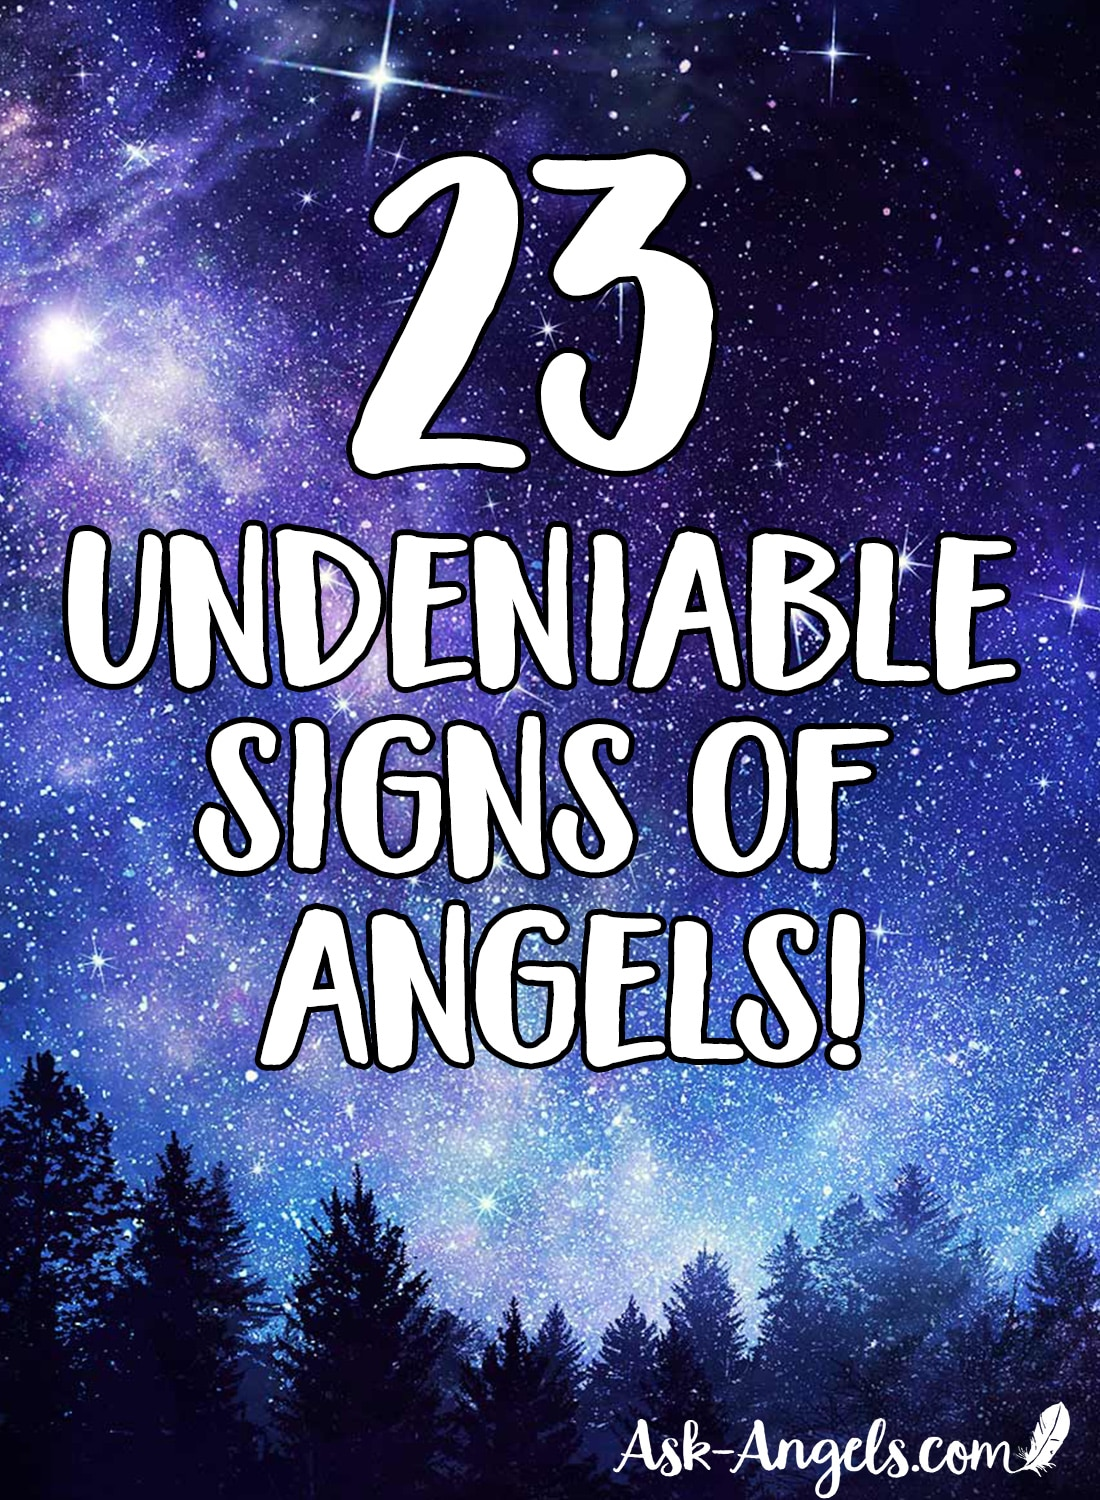 23 Signs of Angels